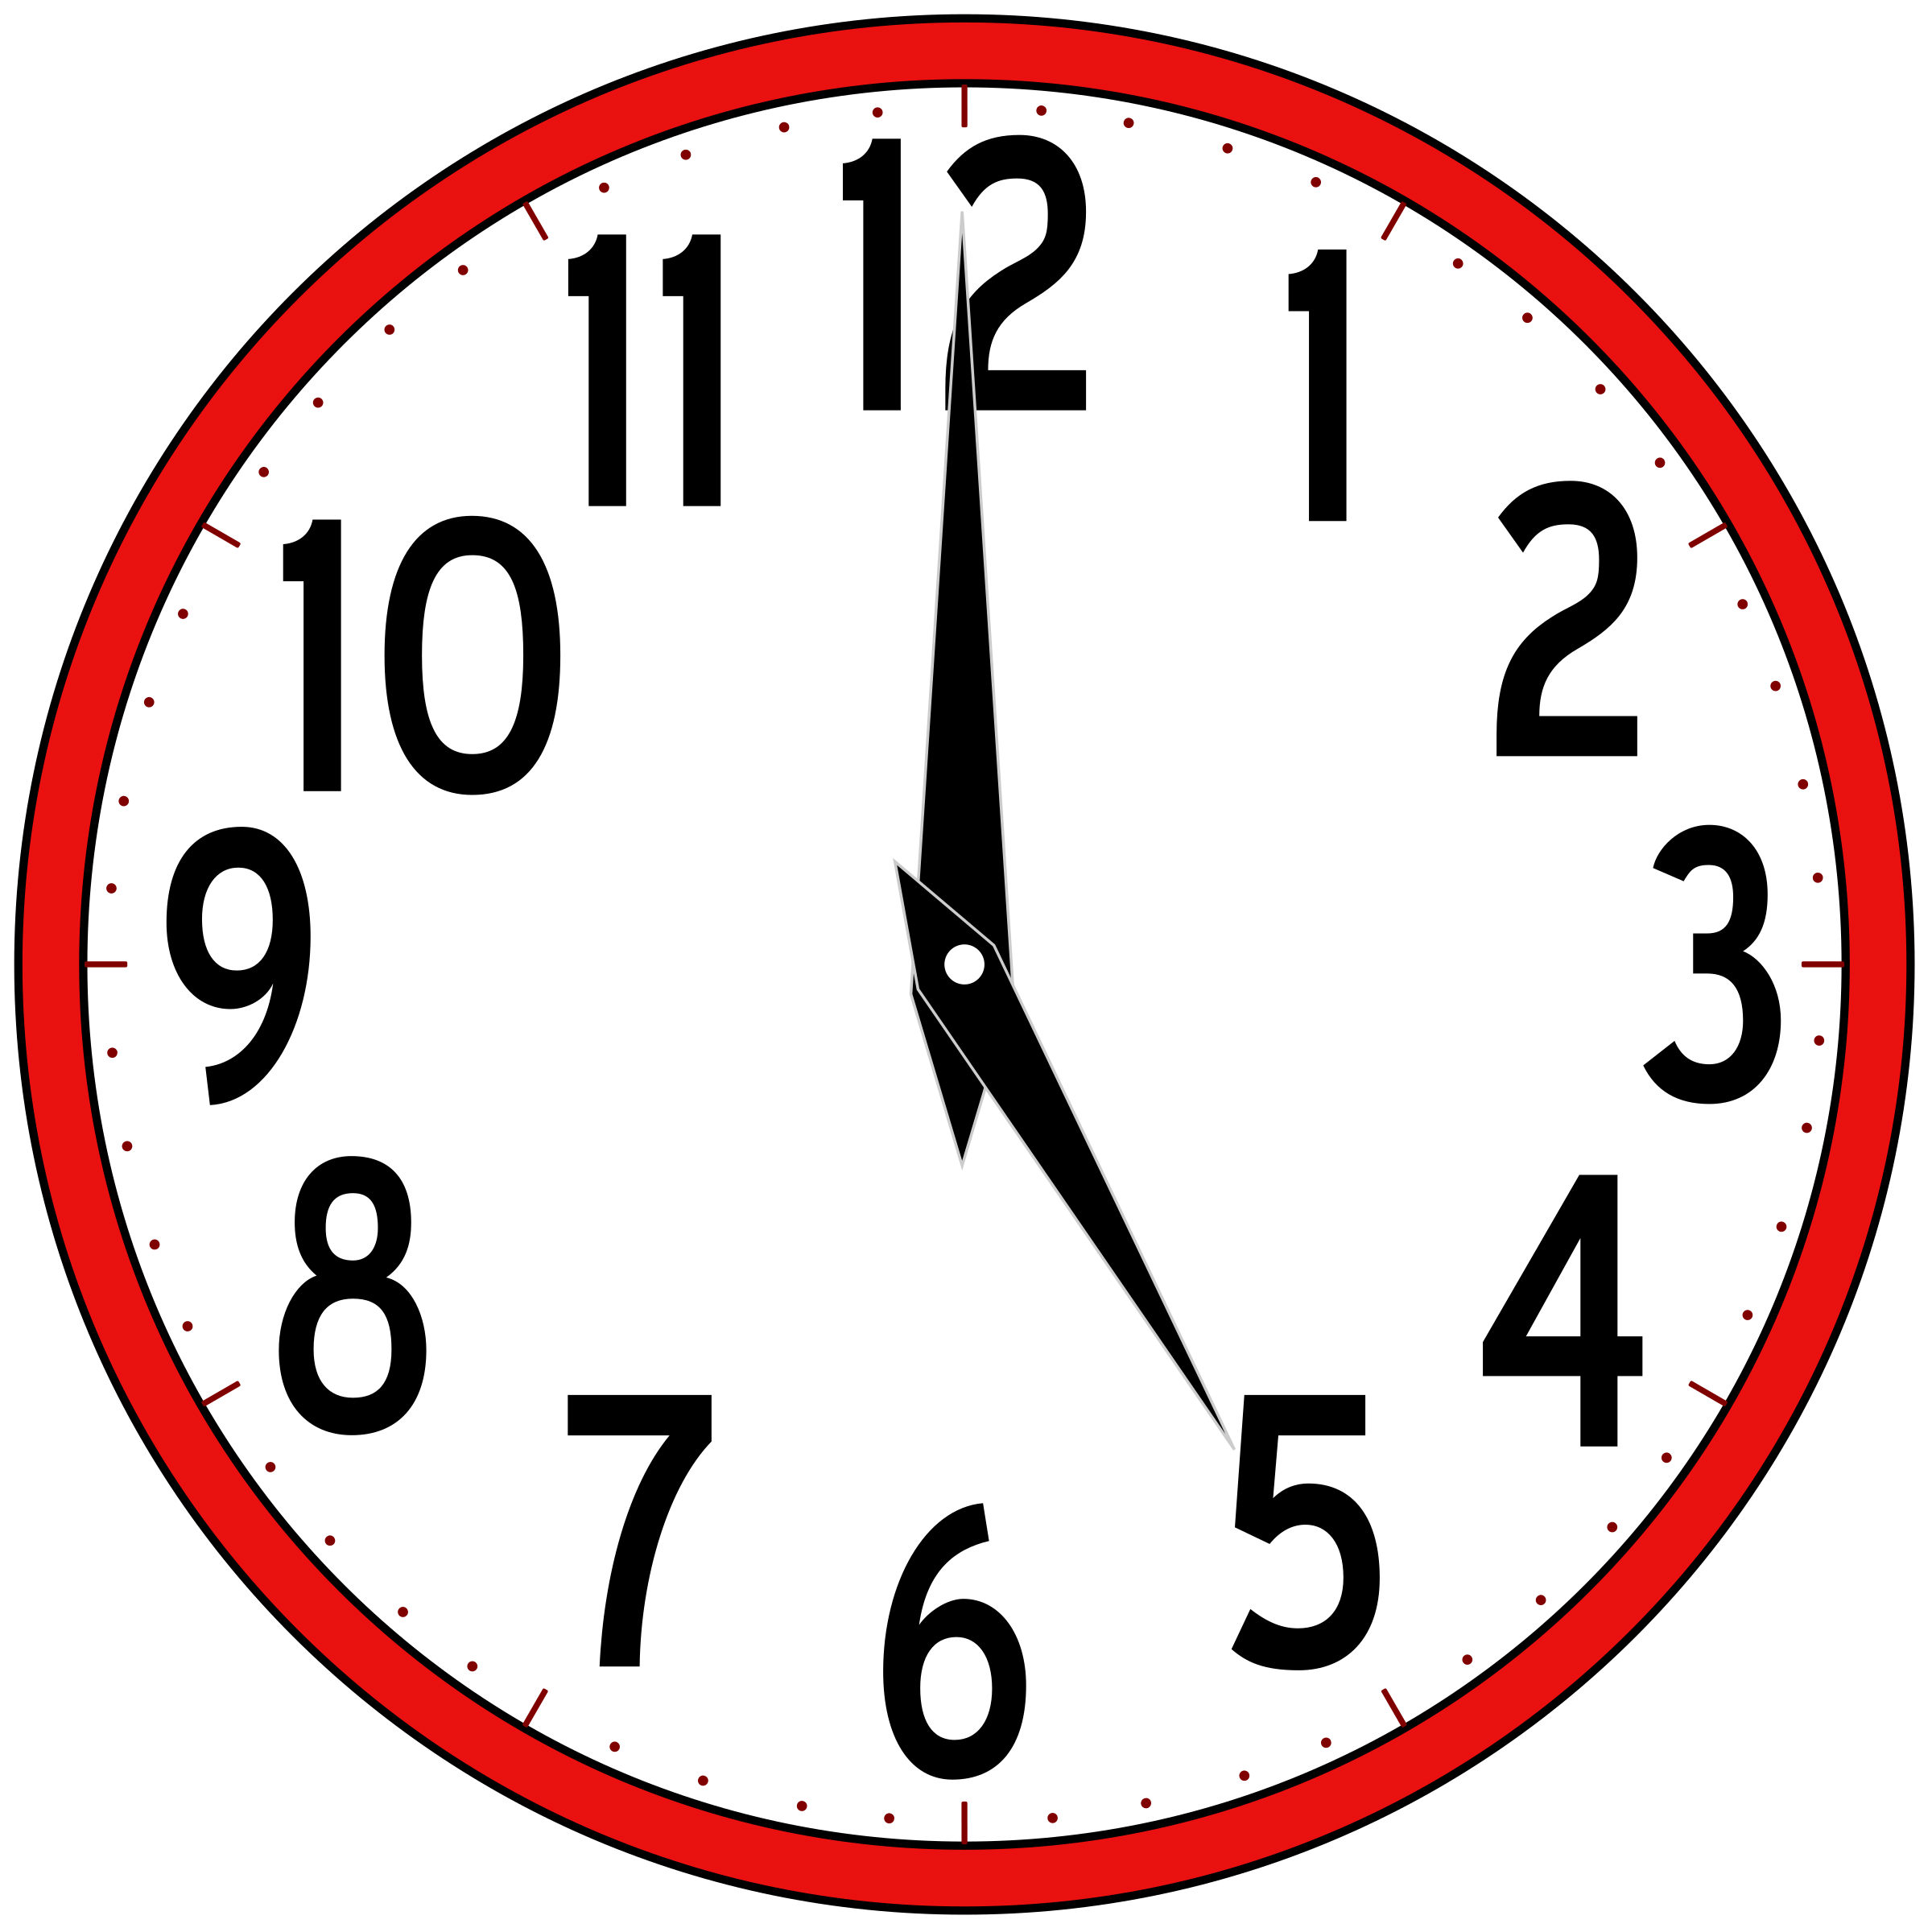 School clock clipart vector royalty free Grandfather Clock Clipart at GetDrawings.com | Free for personal use ... vector royalty free